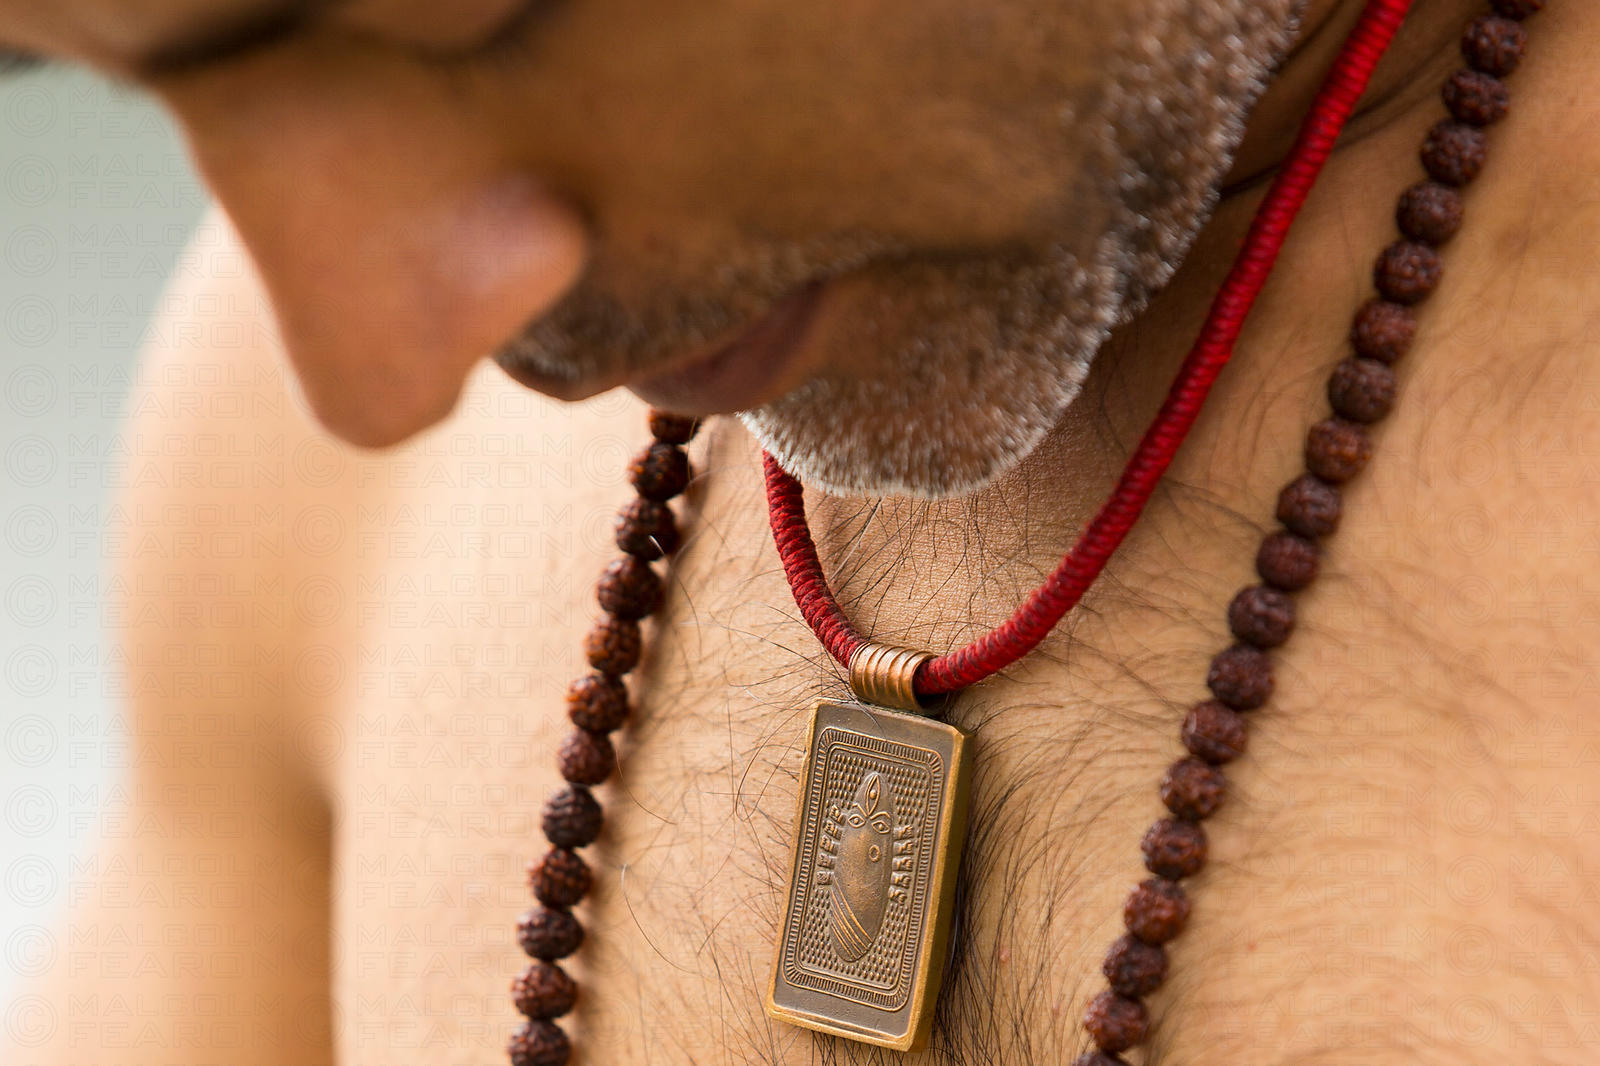 solo man wearing beads and neck pendant with head bowed